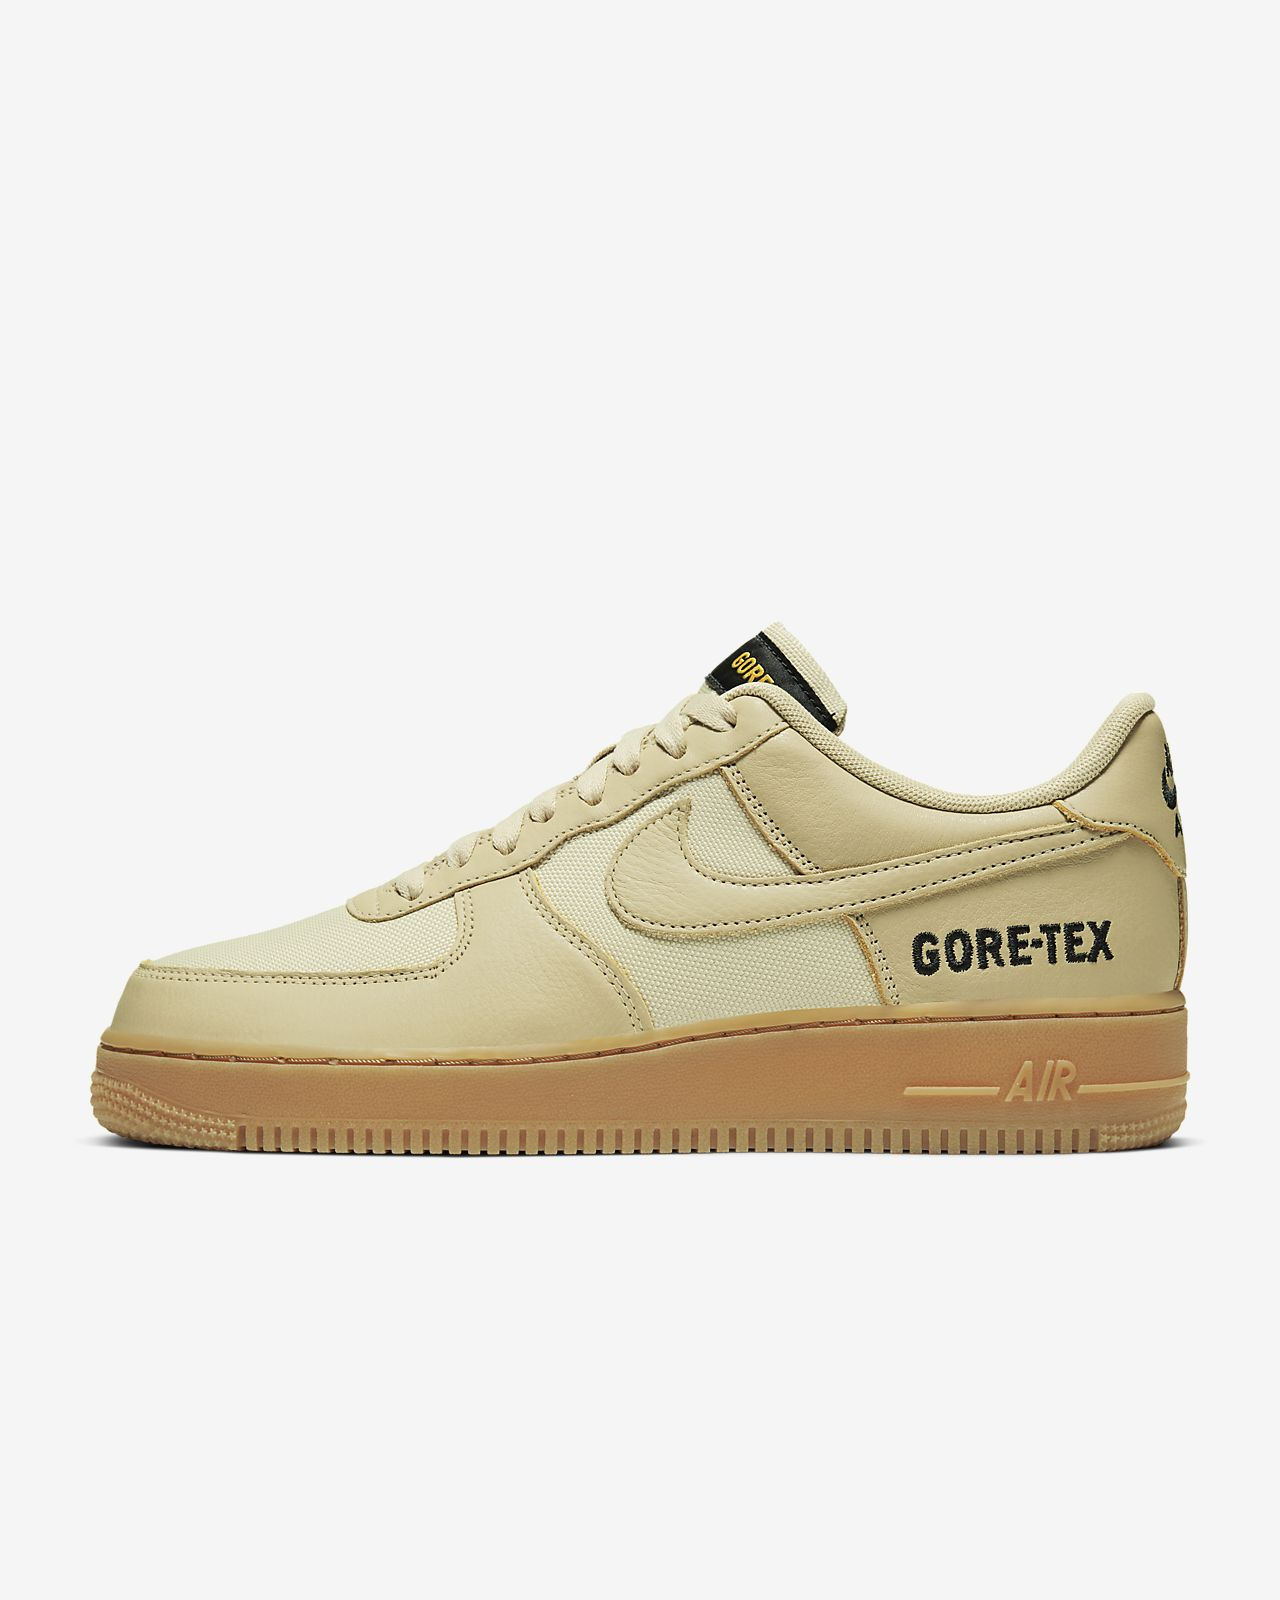 Nike Air Force 1 GORE-TEX Zapatillas